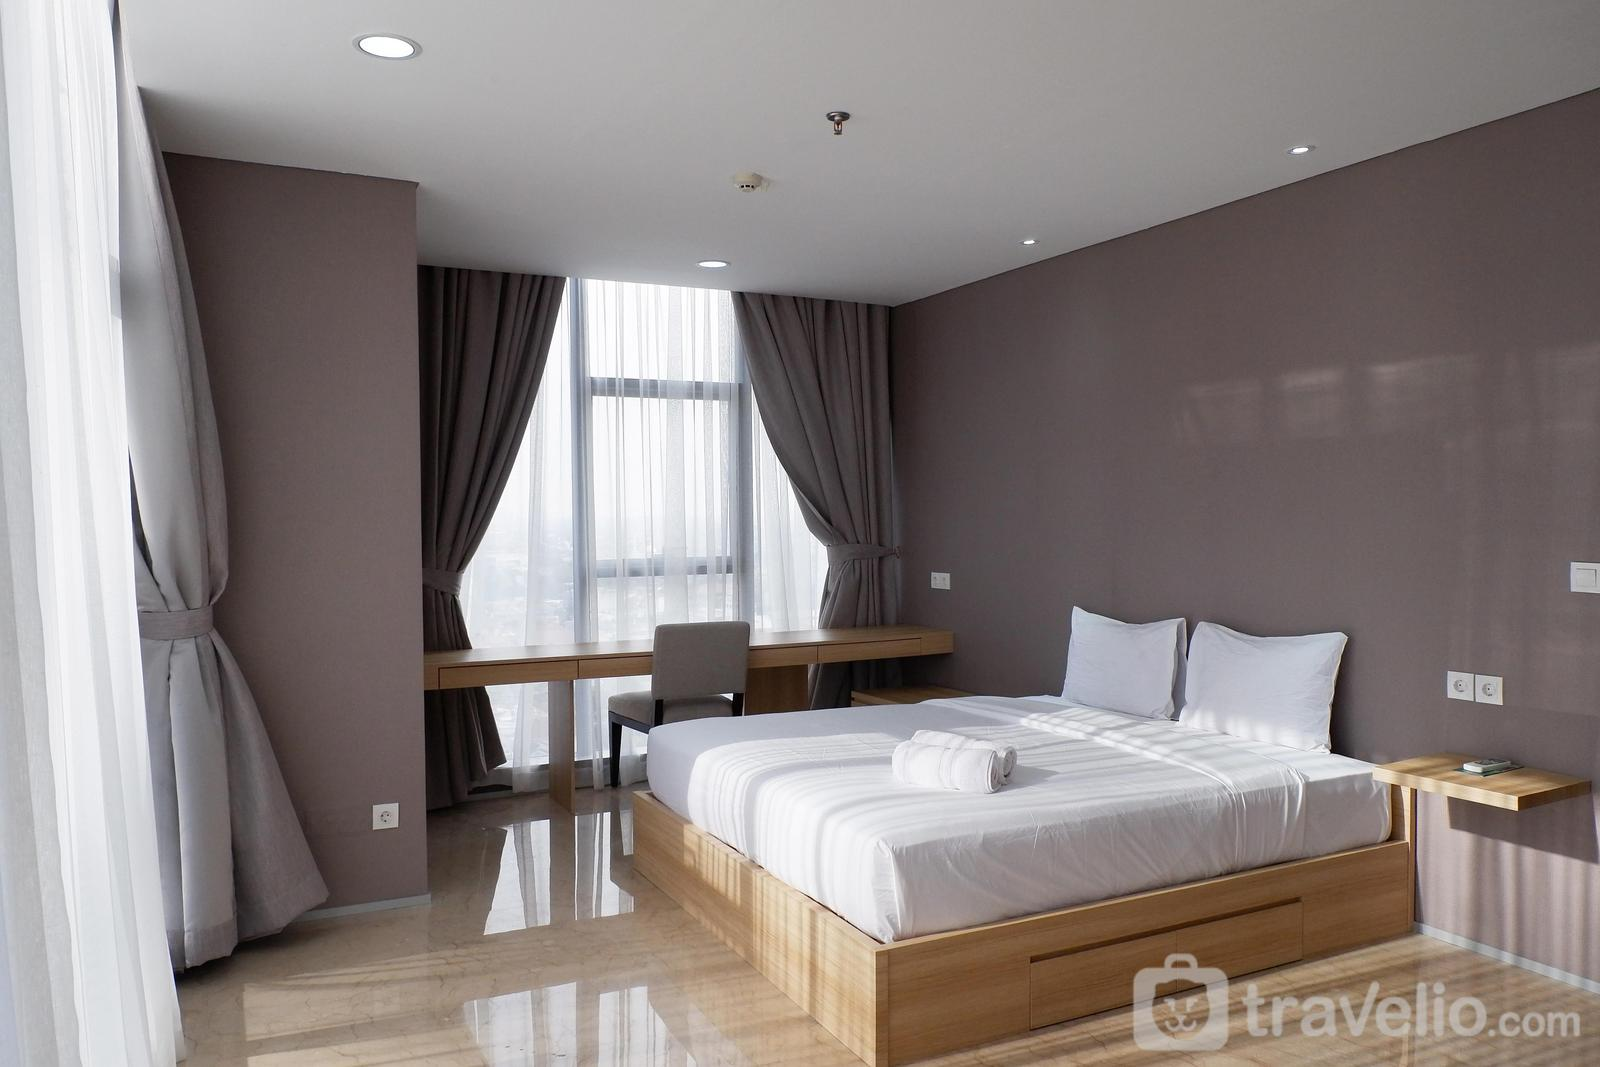 Lavenue Apartemen Pancoran - Premium Suite 2BR L'Avenue Apartment By Travelio